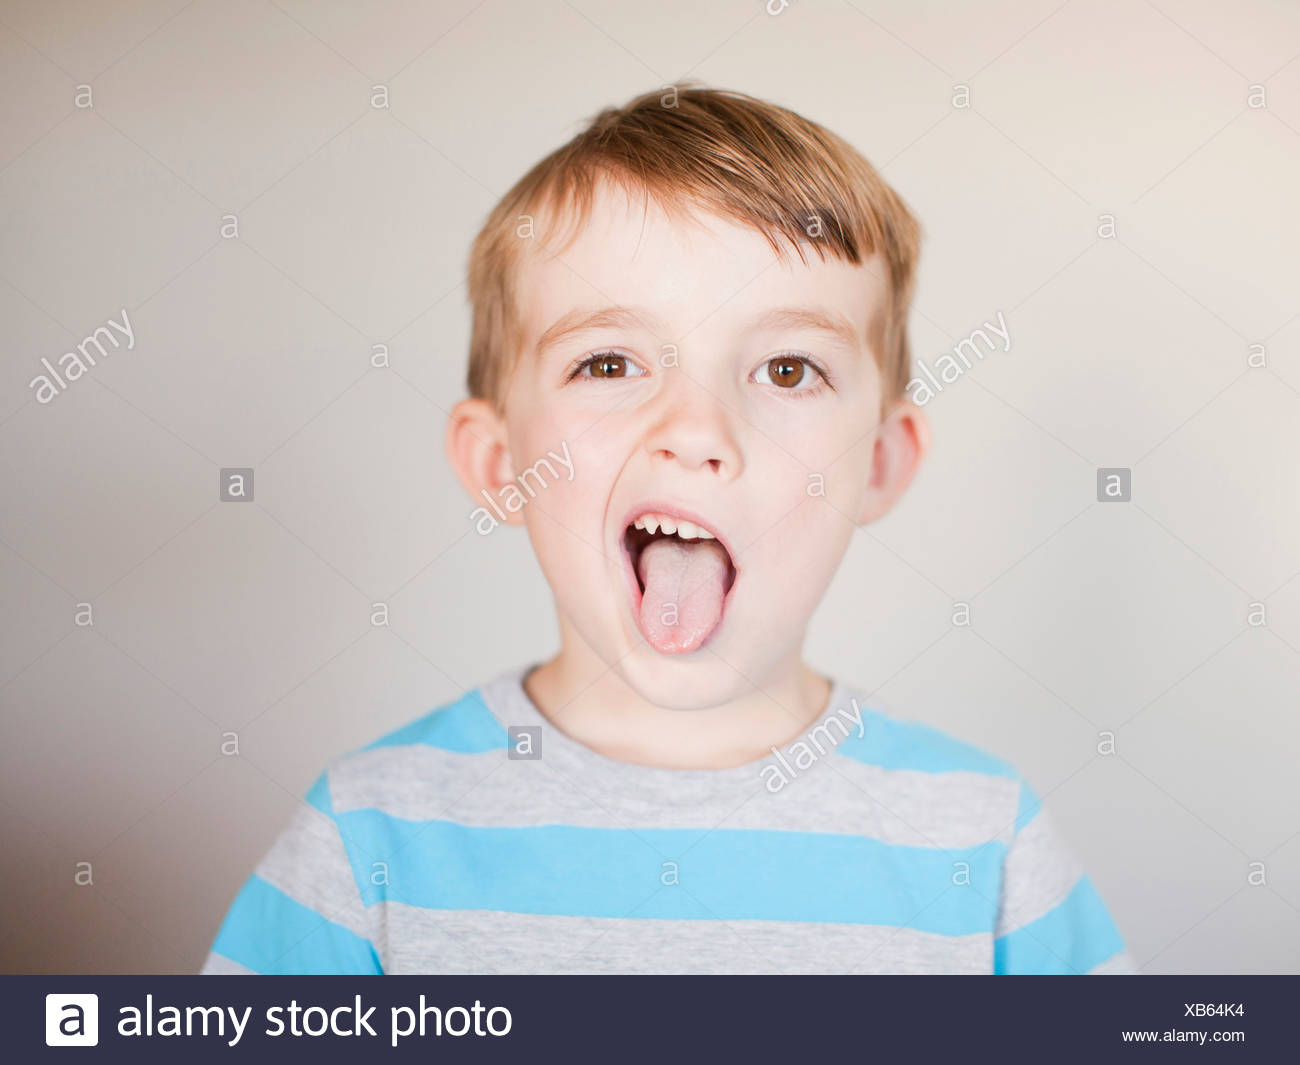 Studio Shot, Portrait of boy sticking out his tounge - Stock Image